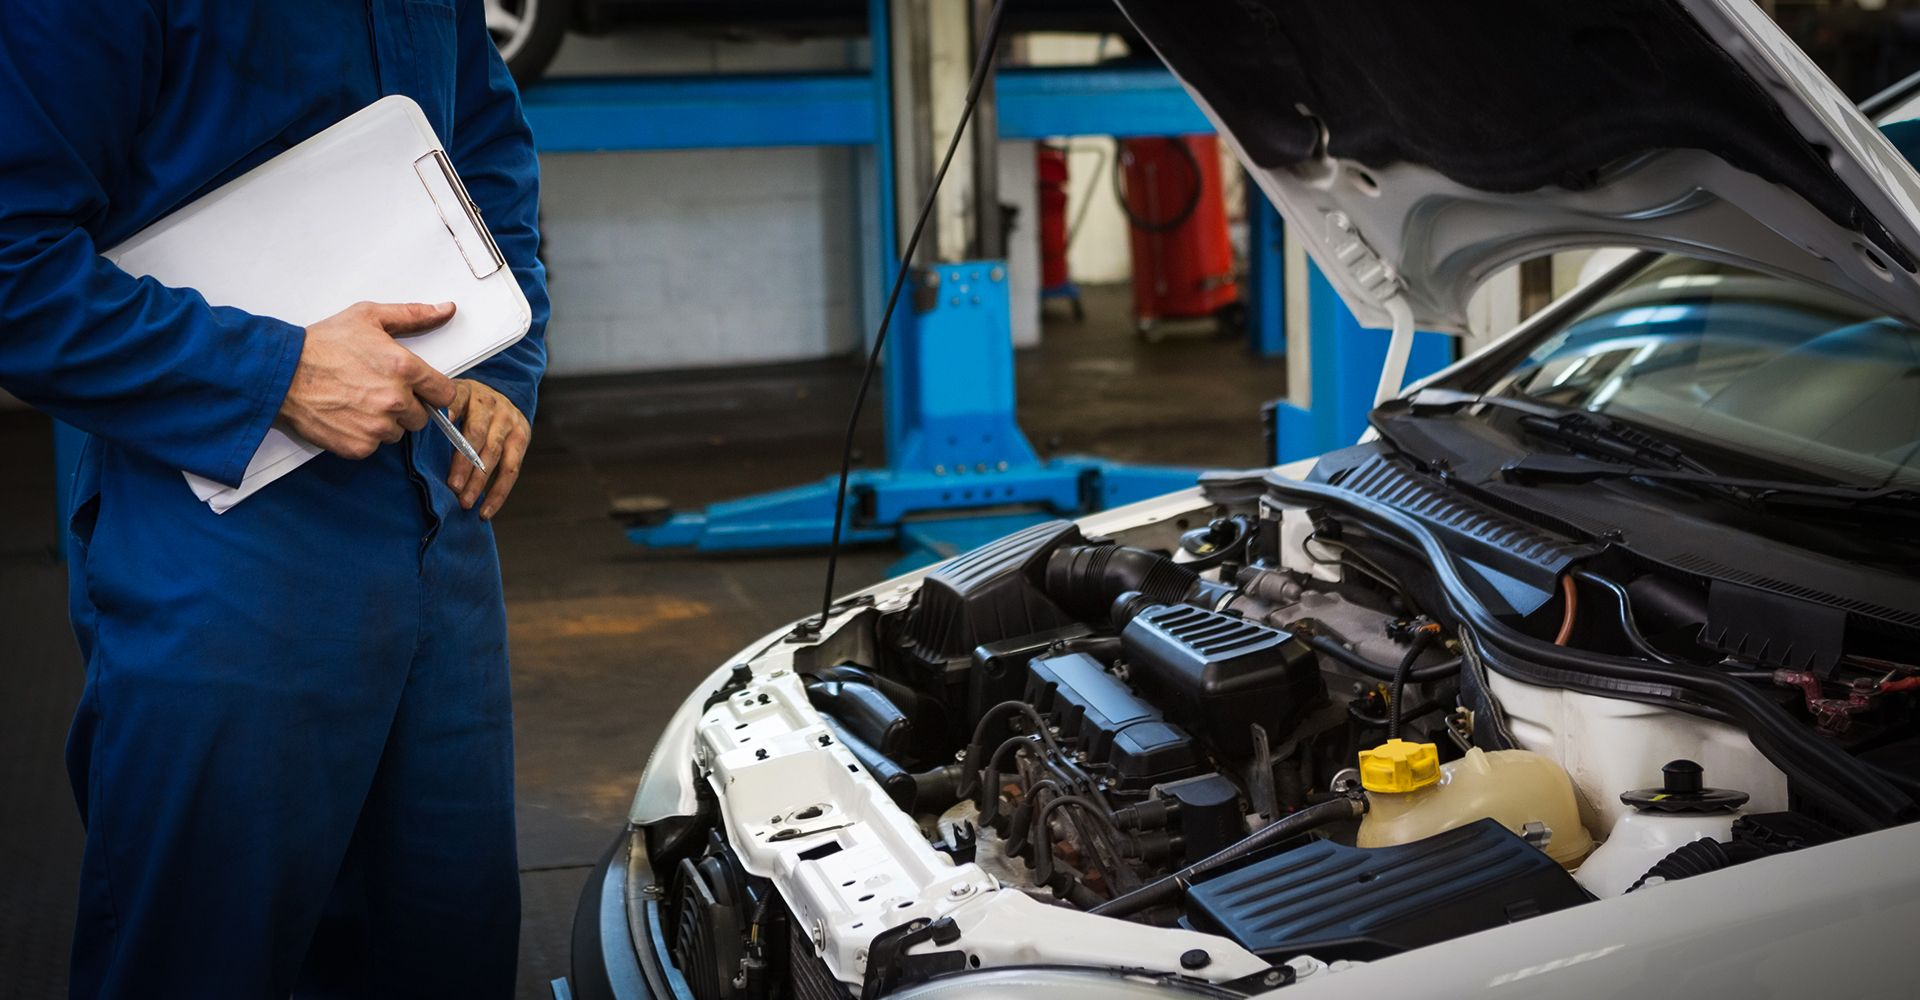 T James Motors Home Page Hero Sevice And Mot Result - T James Motors